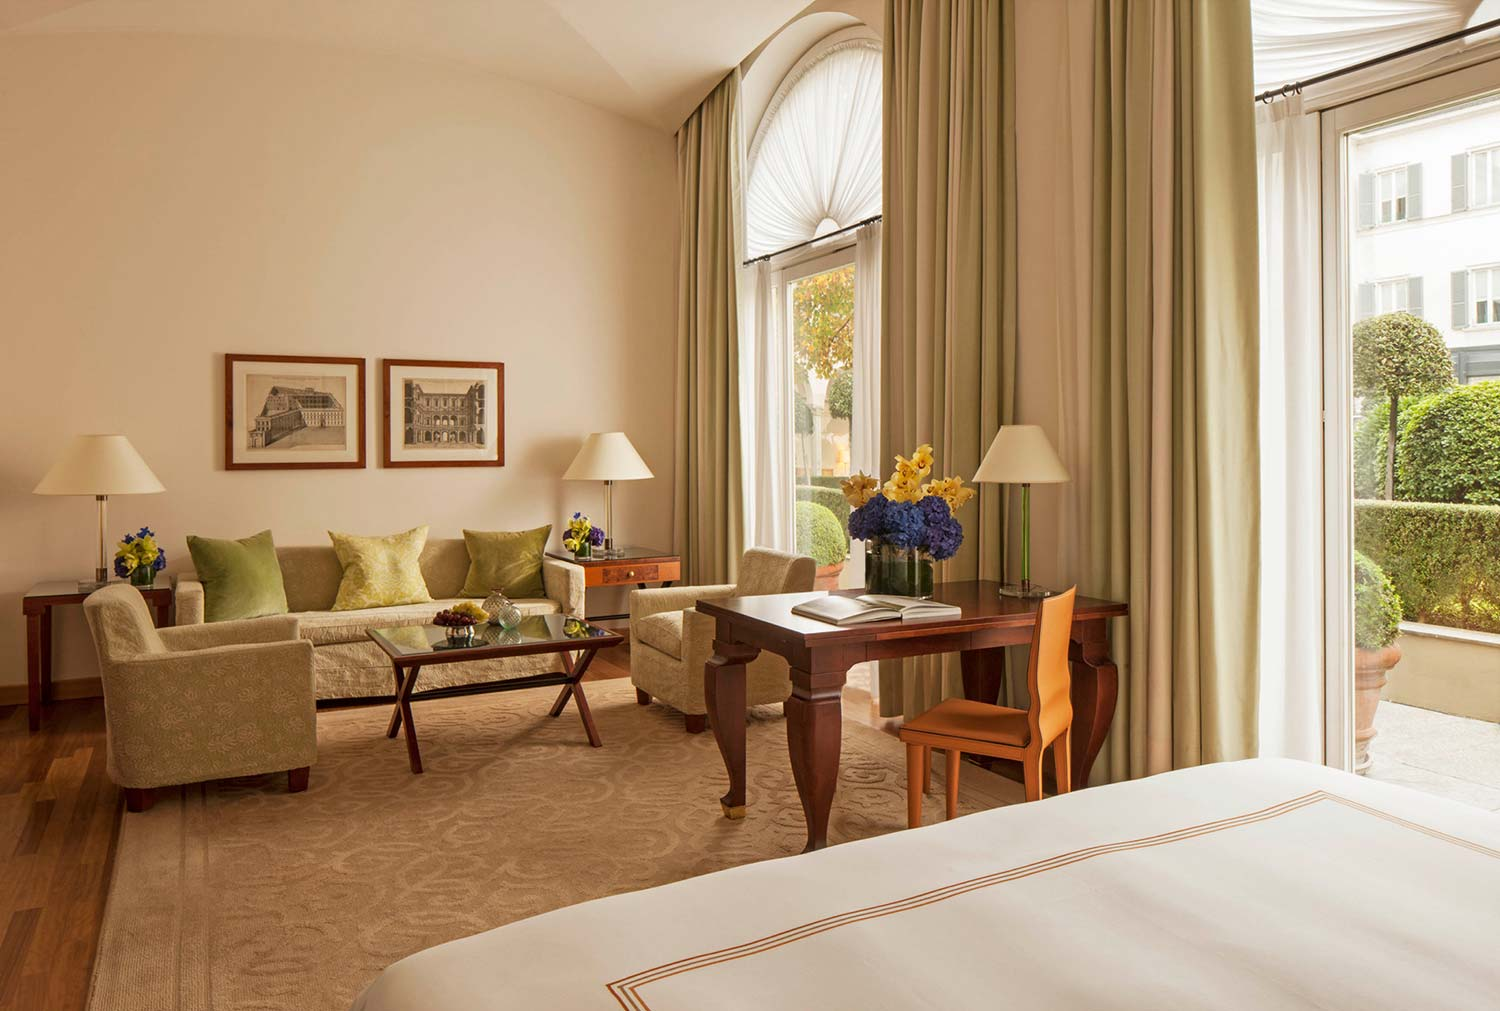 Hotel Le Saint Paul Relais&Chateaux